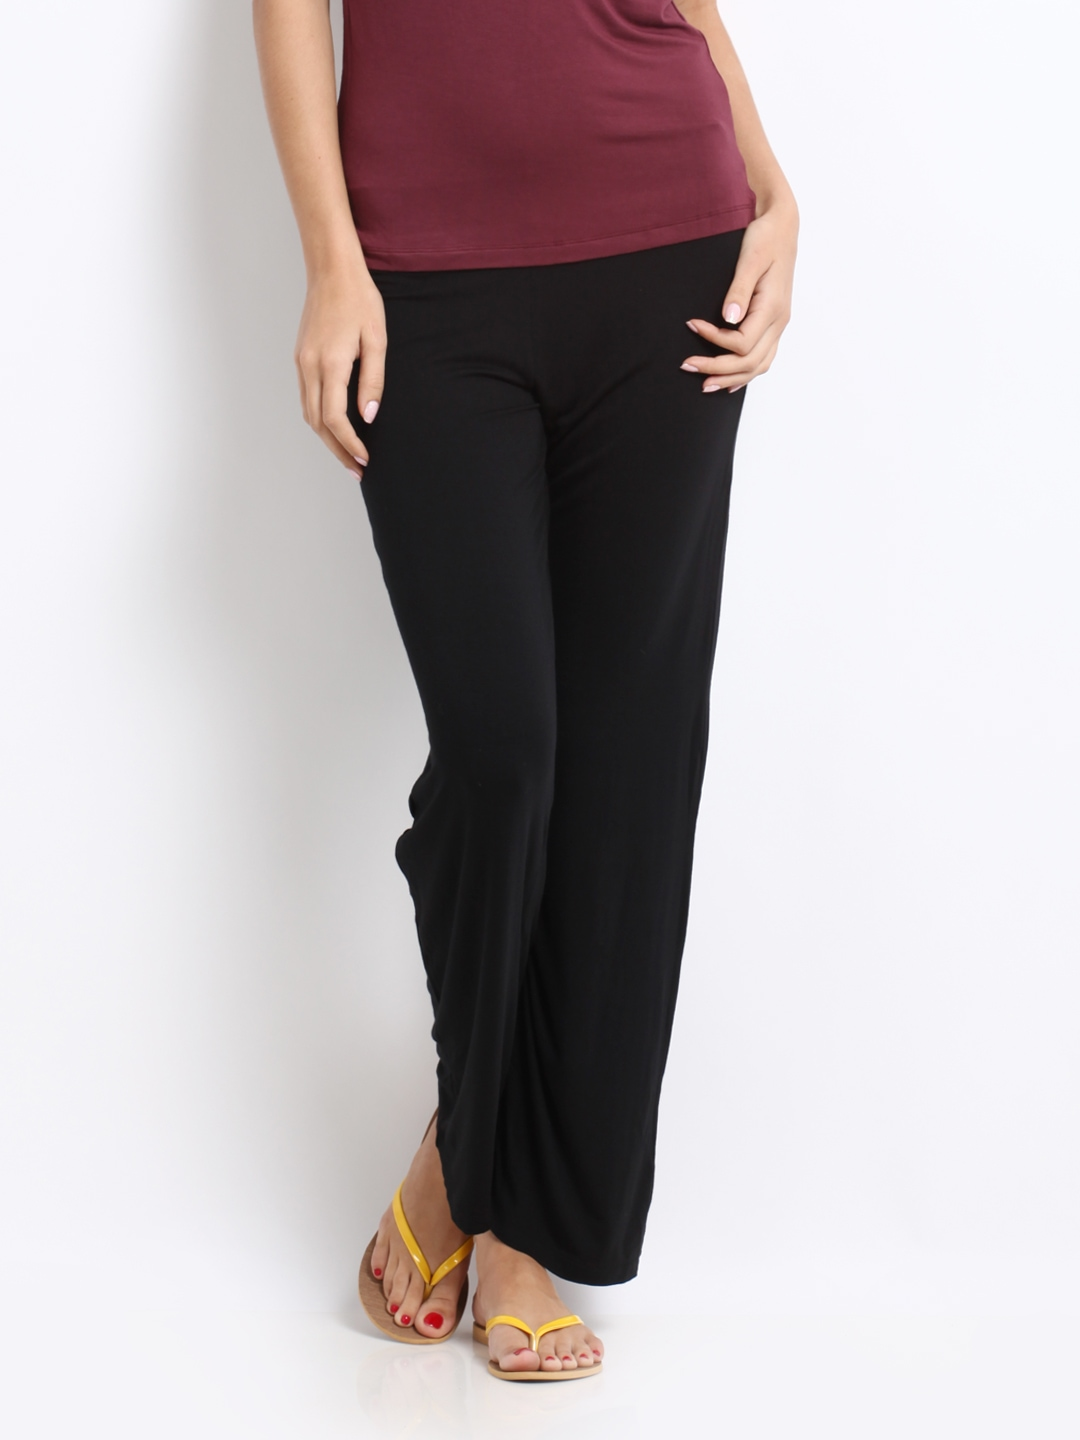 Luxury Make A Stylish Statement At Work In This LA Made Lounge Pant